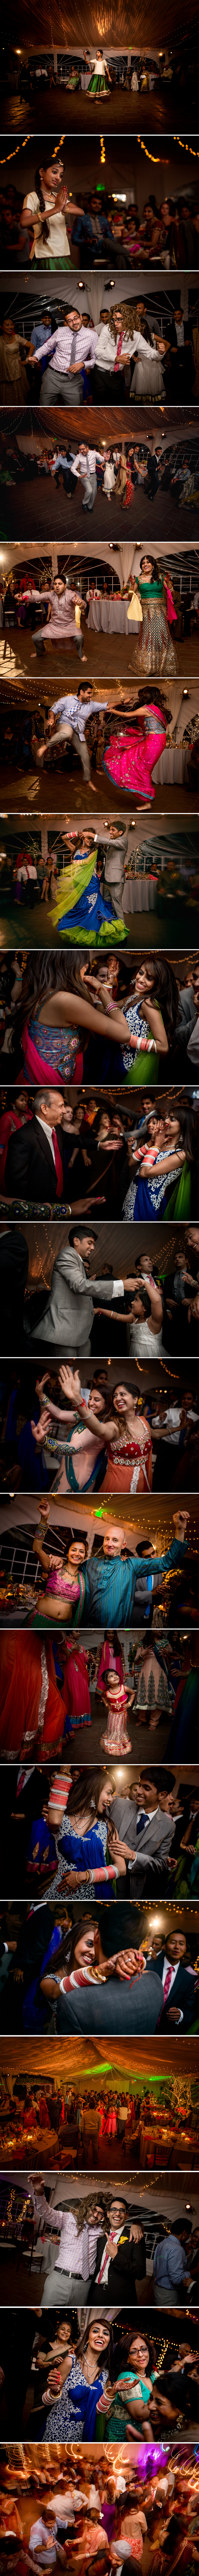 Viansa Winery Indian Wedding